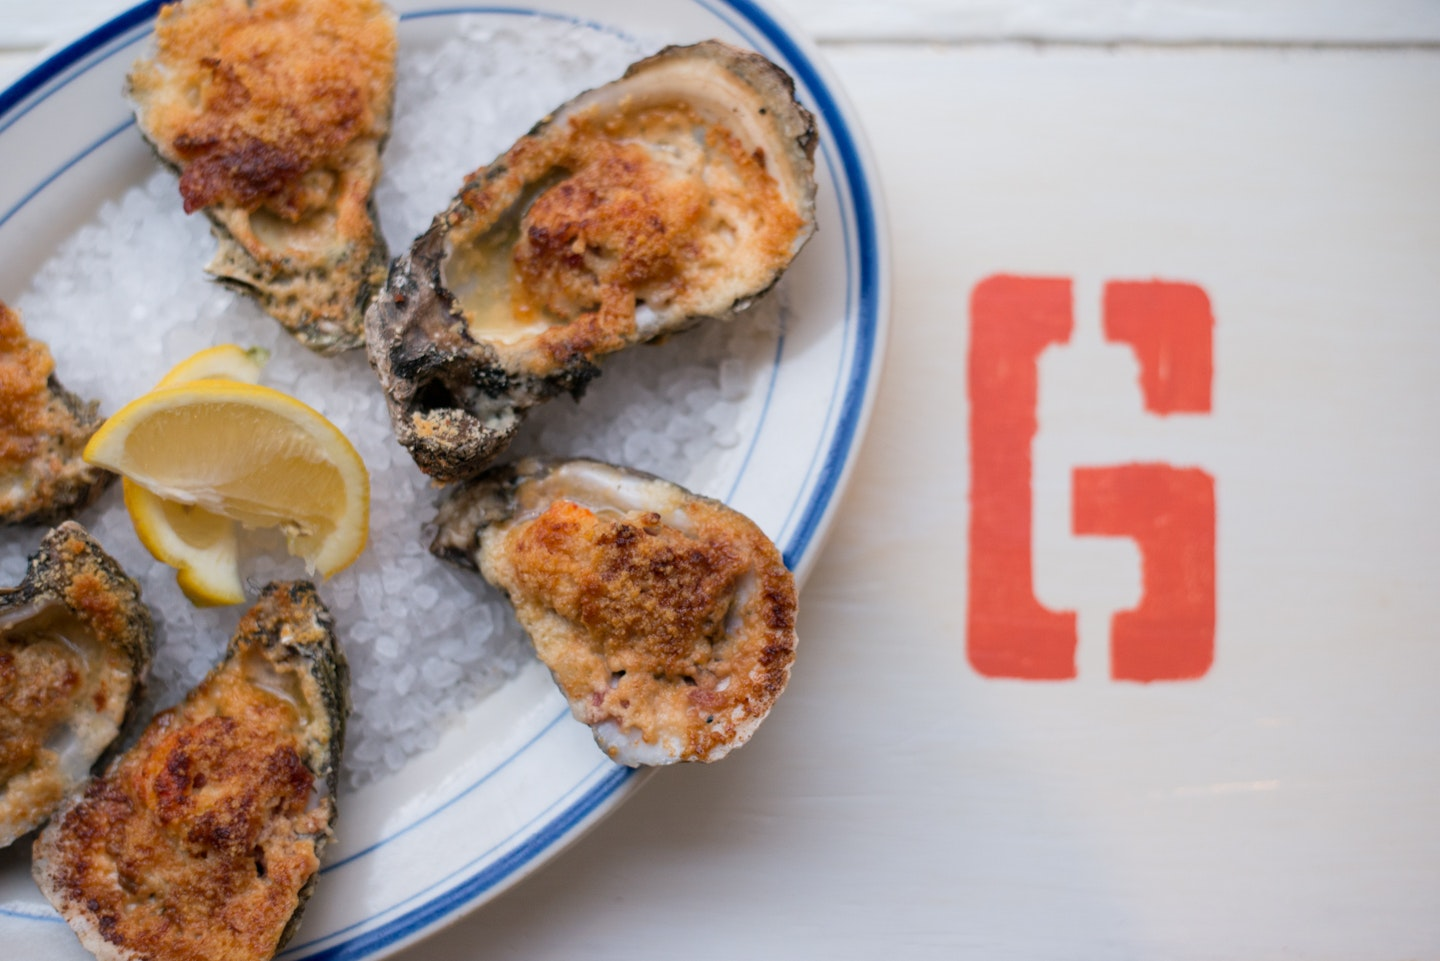 Saltine's wood-fired oysters are to die for.